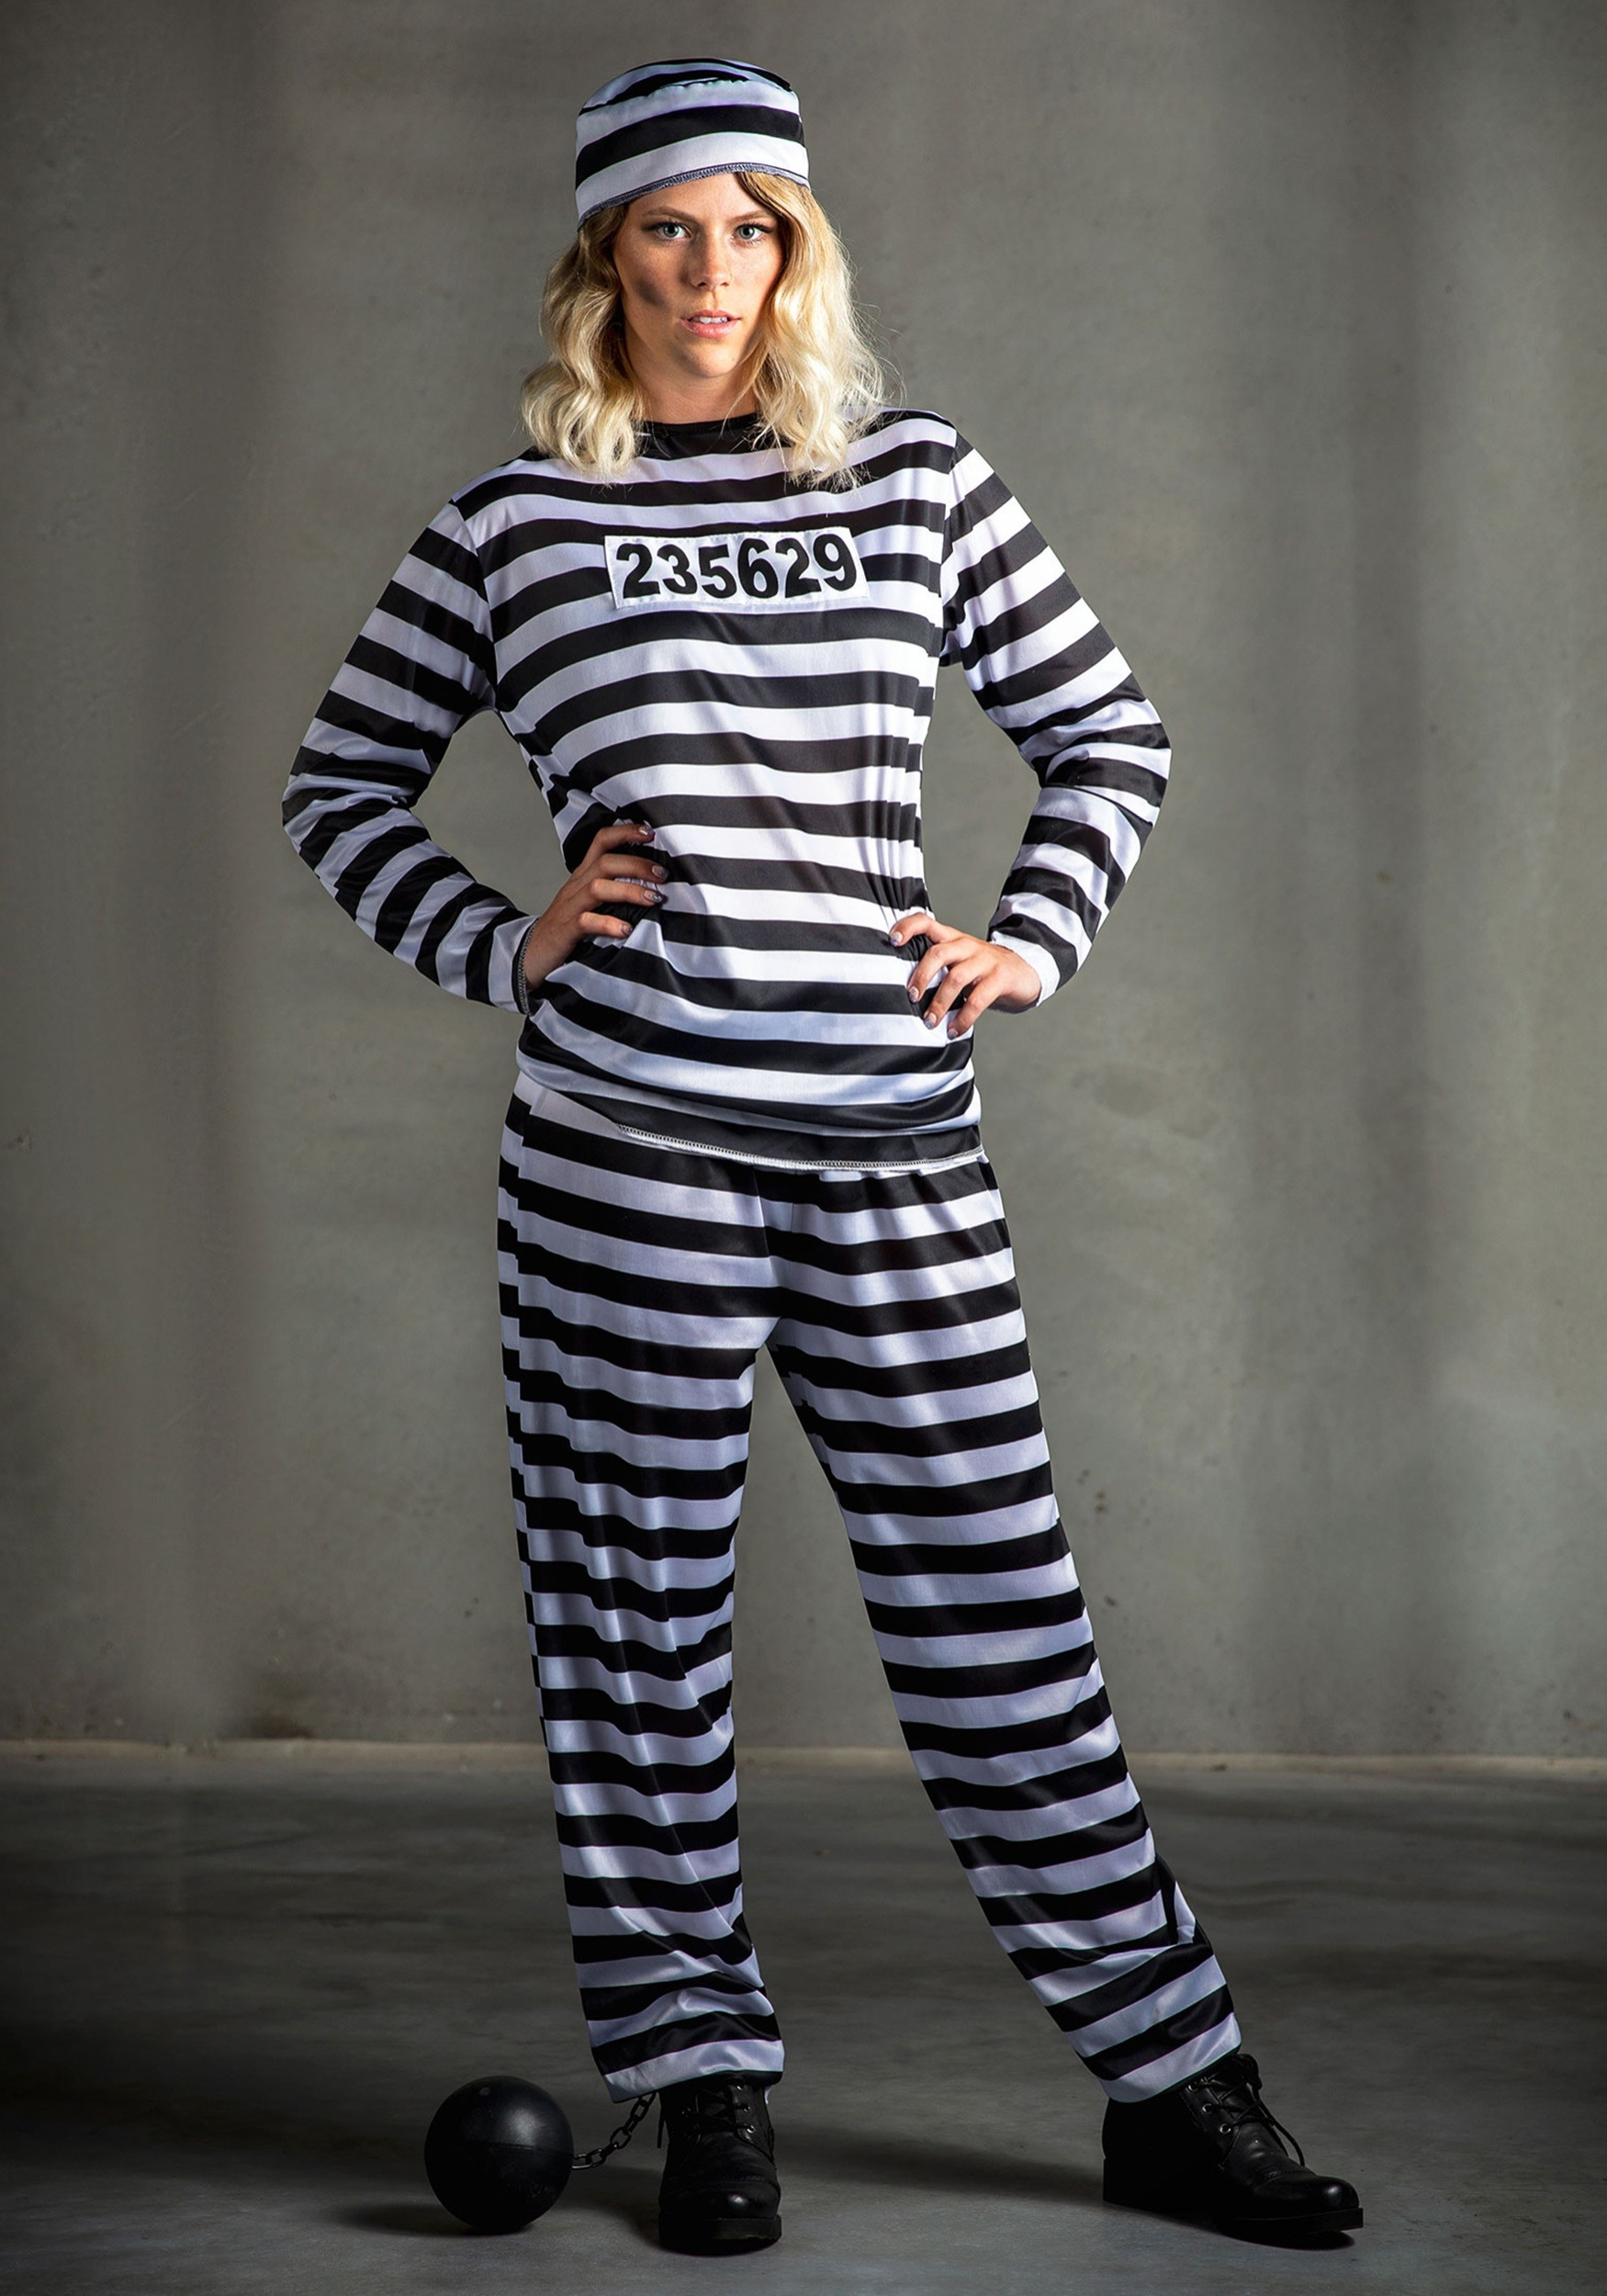 8e89bec1b0d Plus Size Women's Prisoner Costume